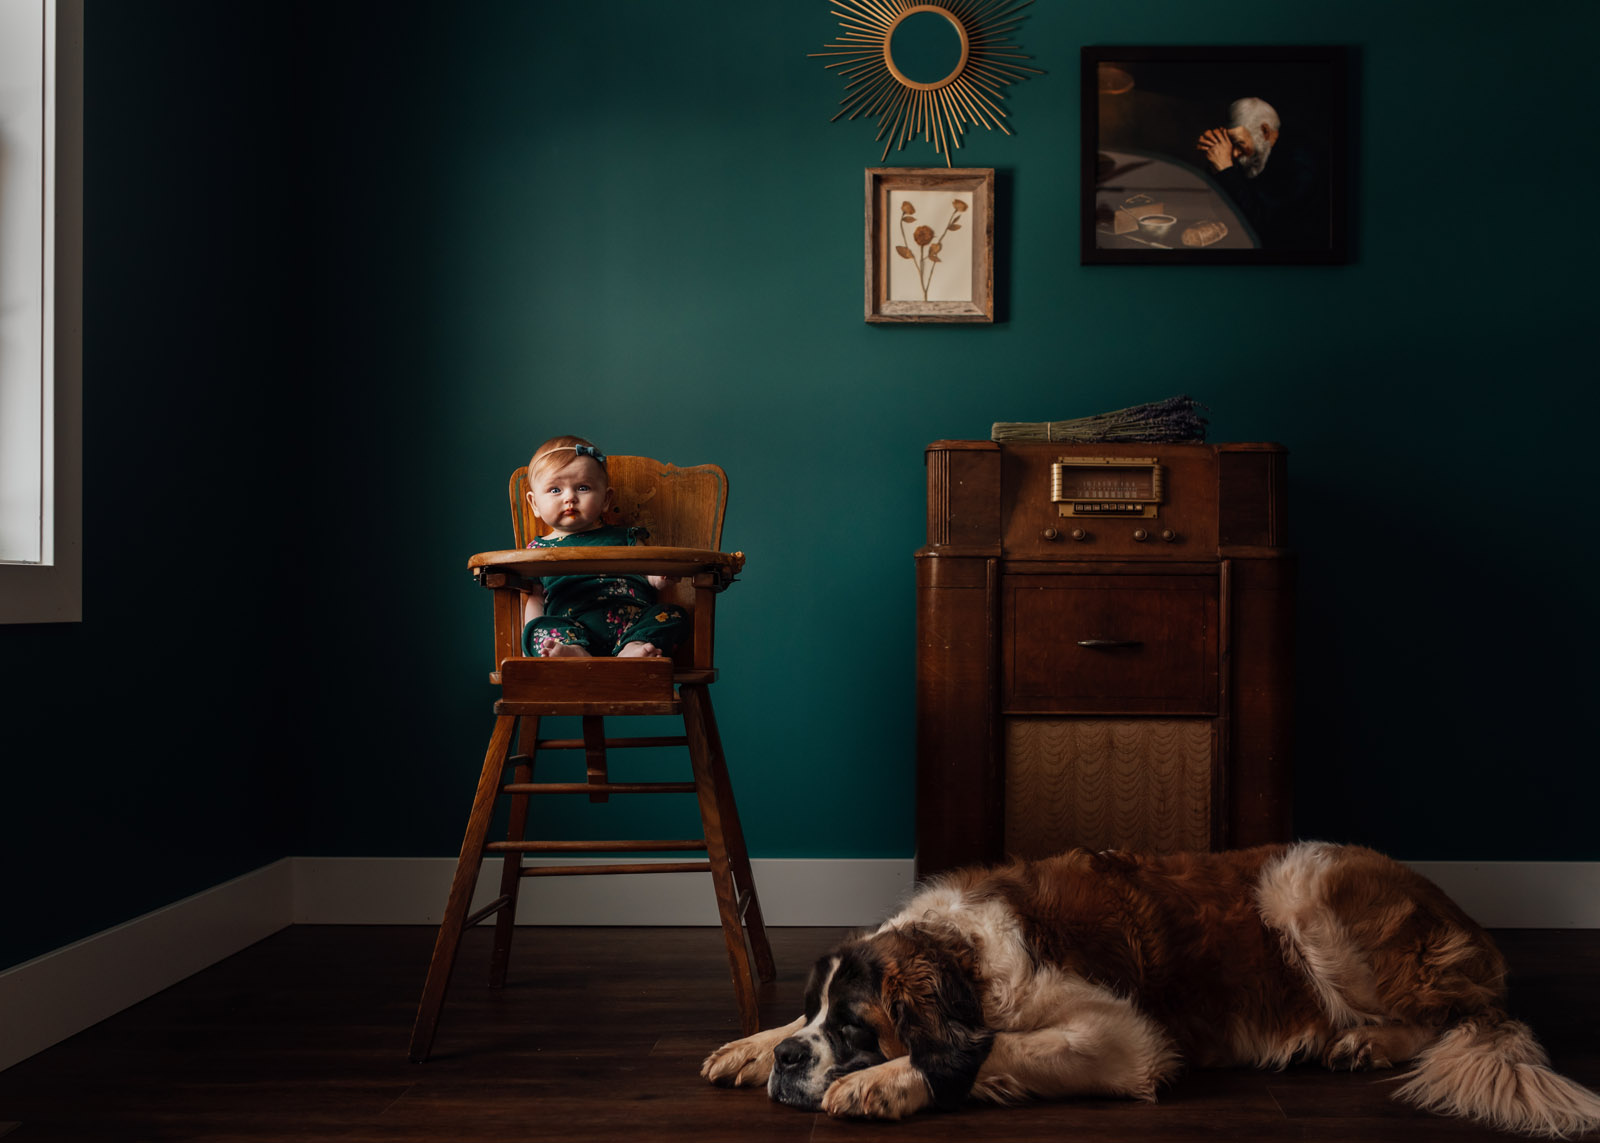 Photographing Pets Baby In High Chair With Large Dog Laying Nearby